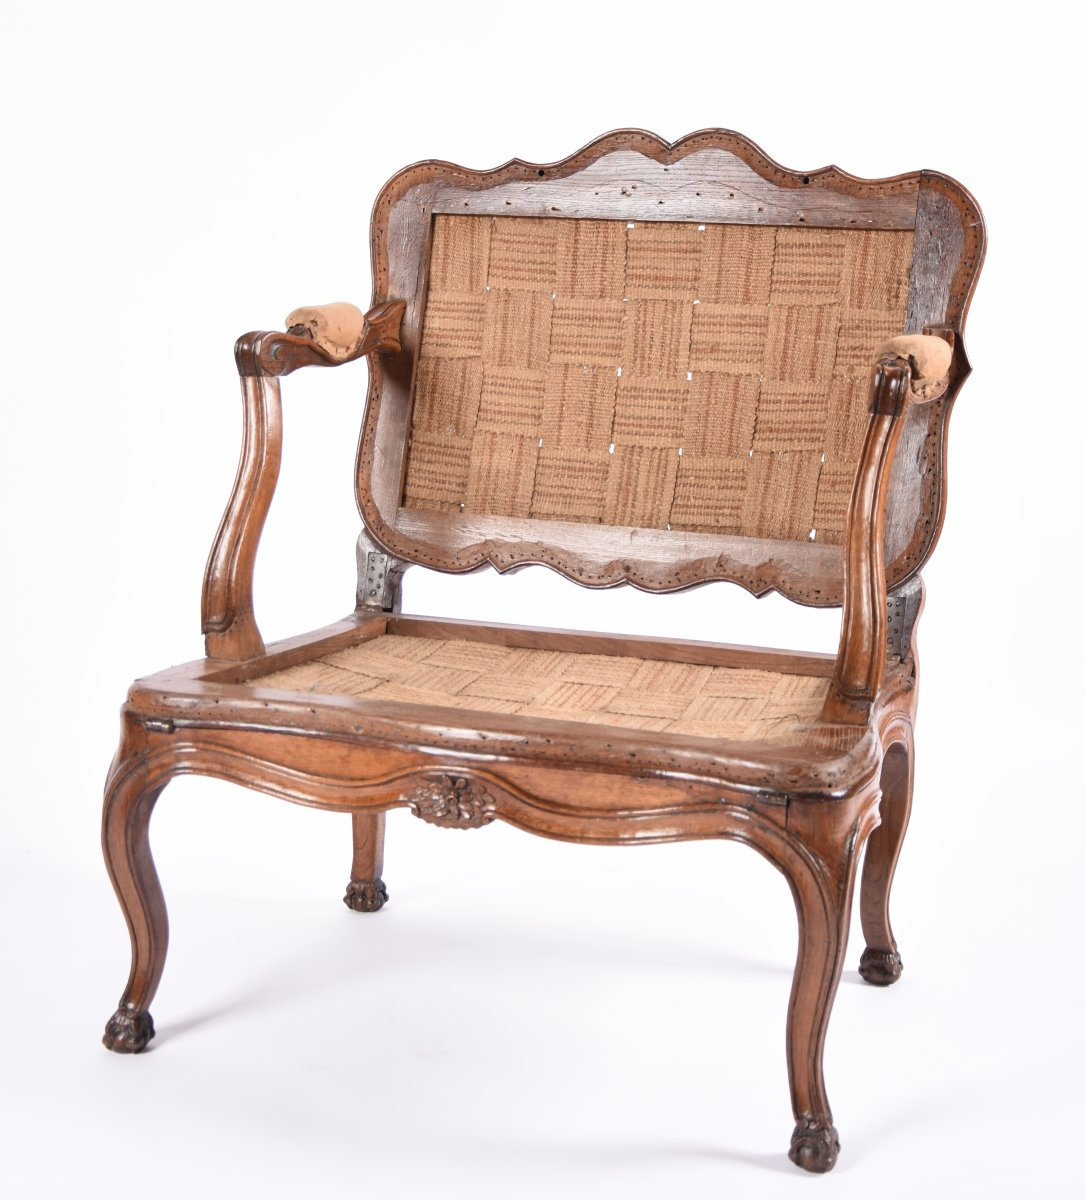 rare fauteuil syst me formant lit poque louis xv xviiie si cle. Black Bedroom Furniture Sets. Home Design Ideas